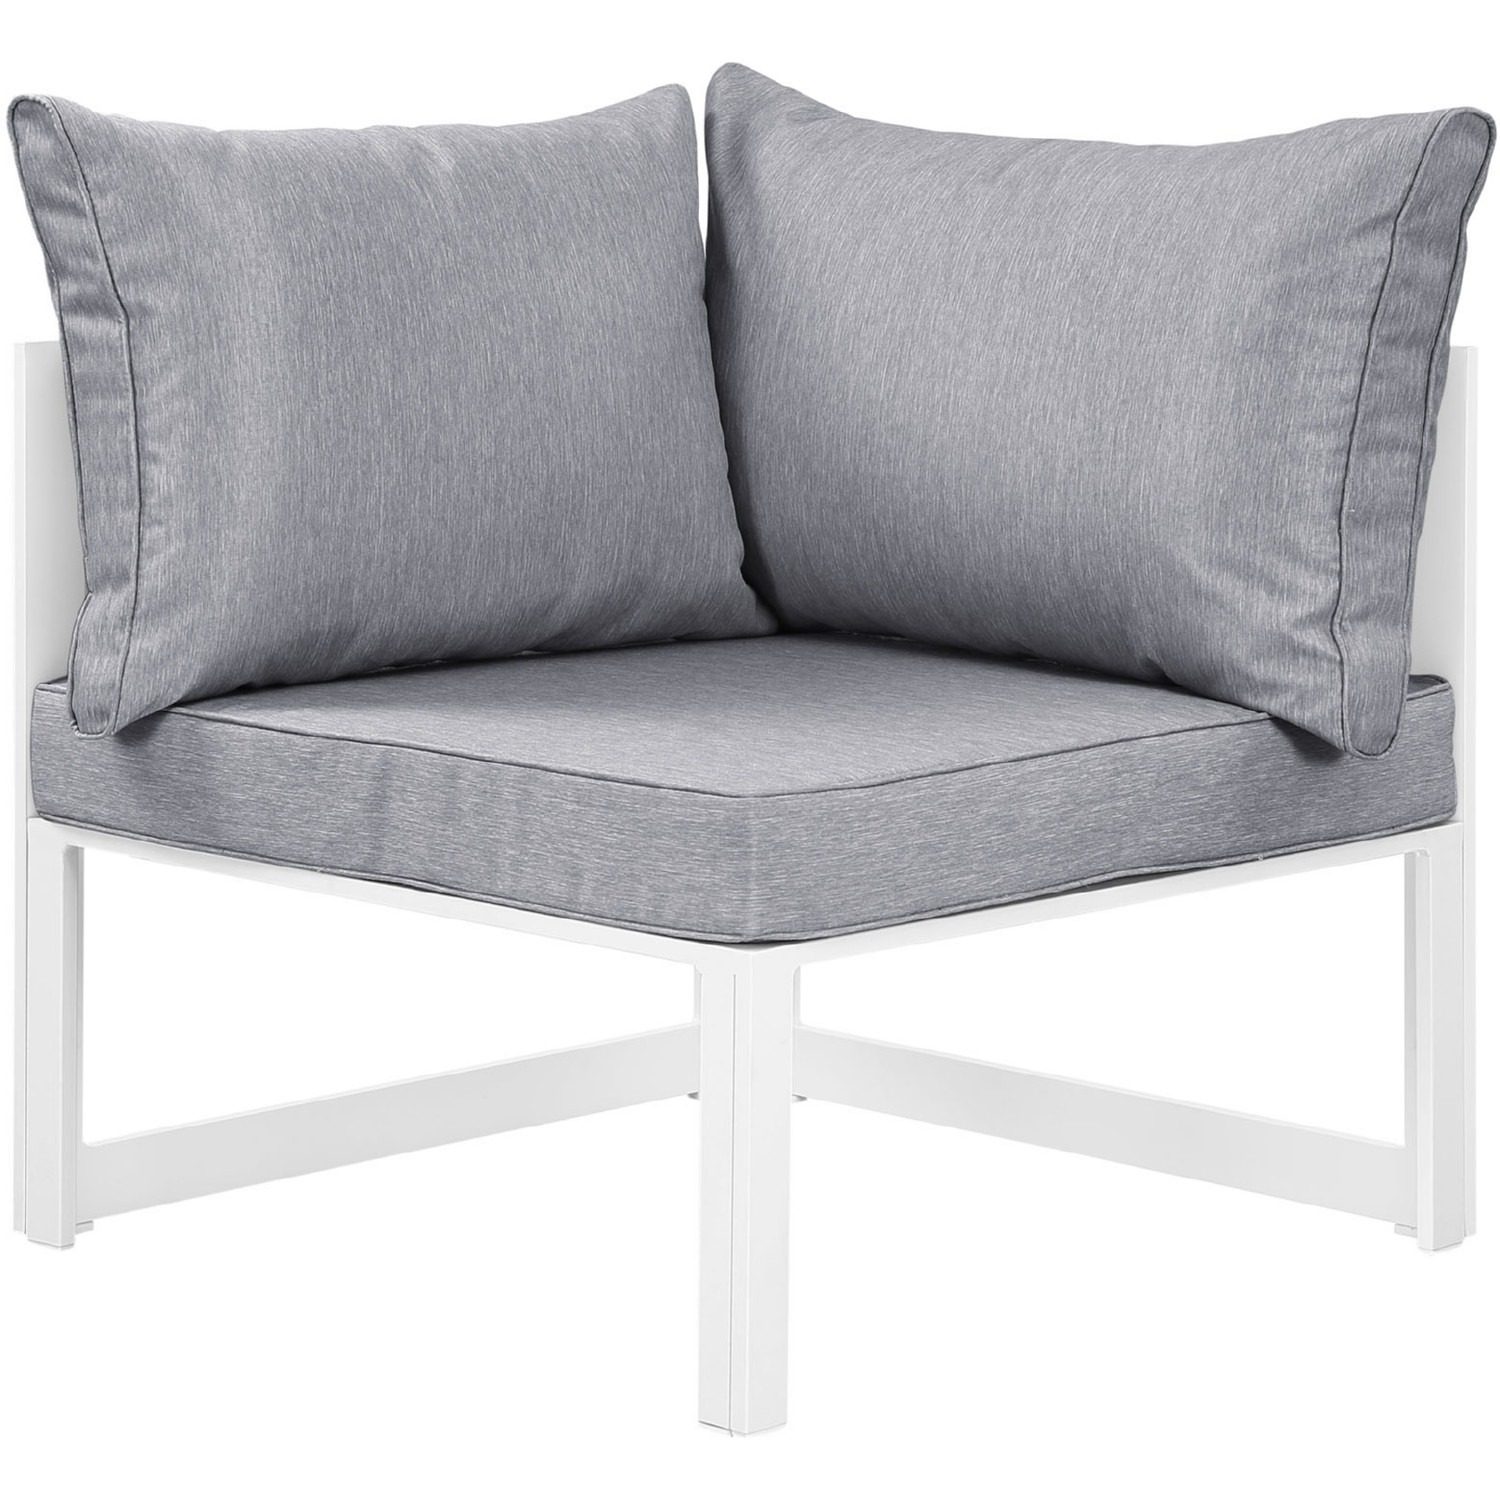 6-Piece Outdoor Sectional In Gray Cushion Fabric - image-4